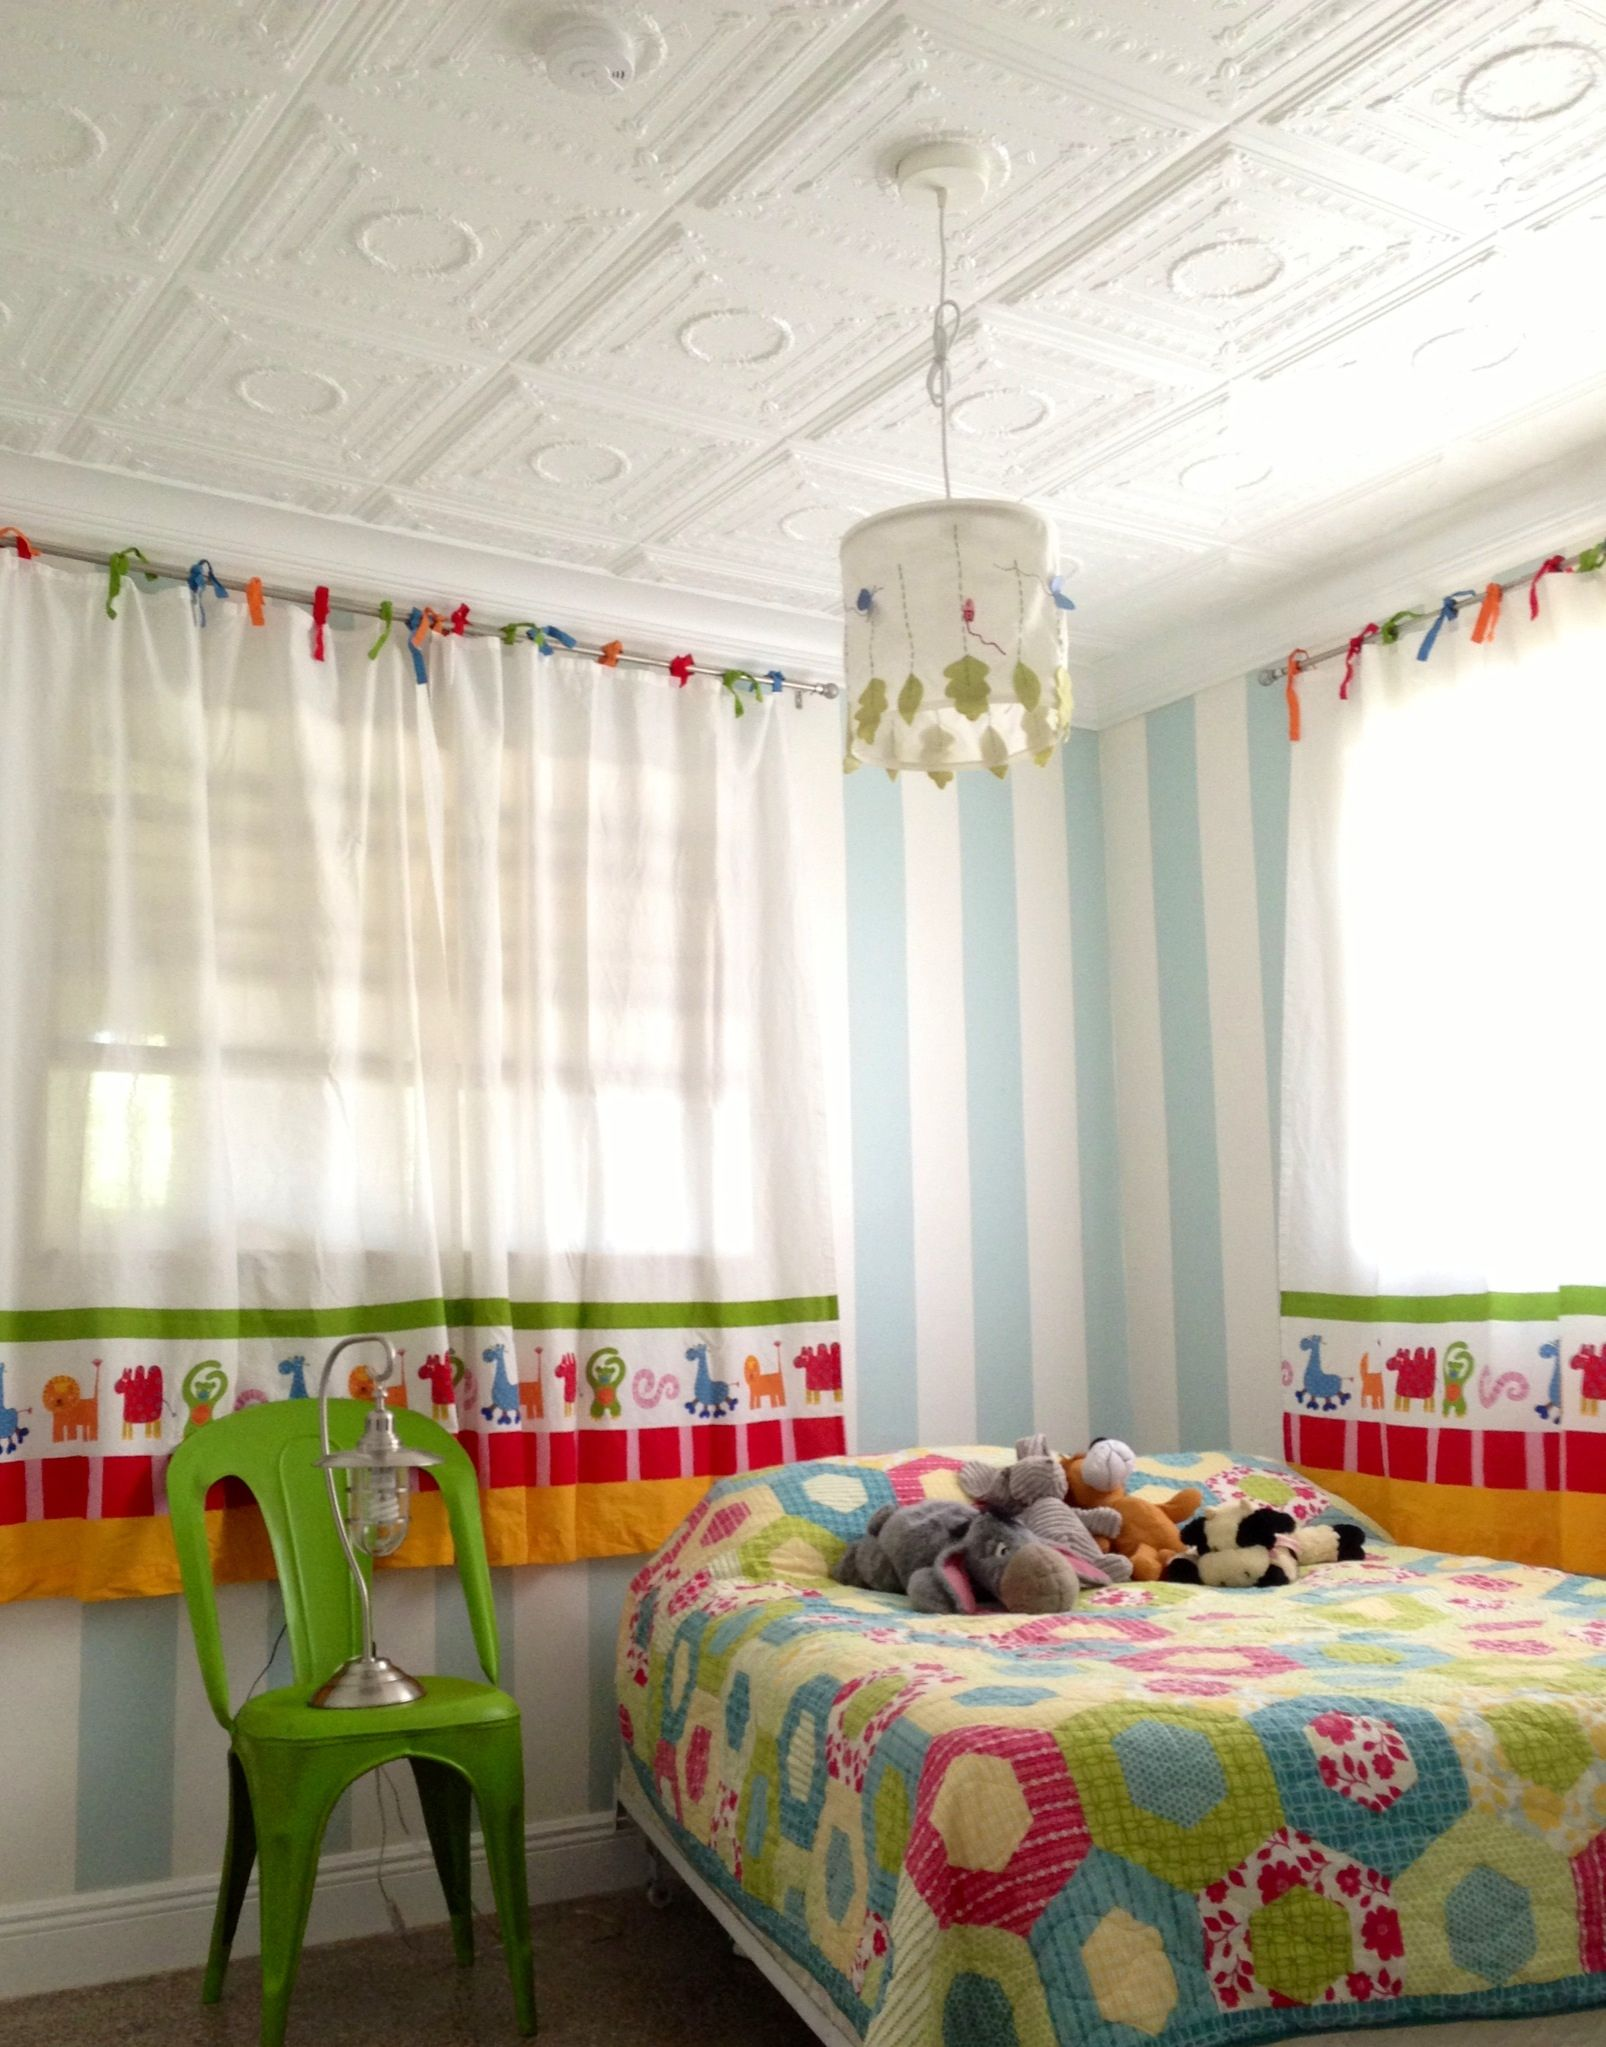 Kids bedroom with decorative ceiling tiles bedroom ideas kids bedroom with decorative ceiling tiles dailygadgetfo Gallery